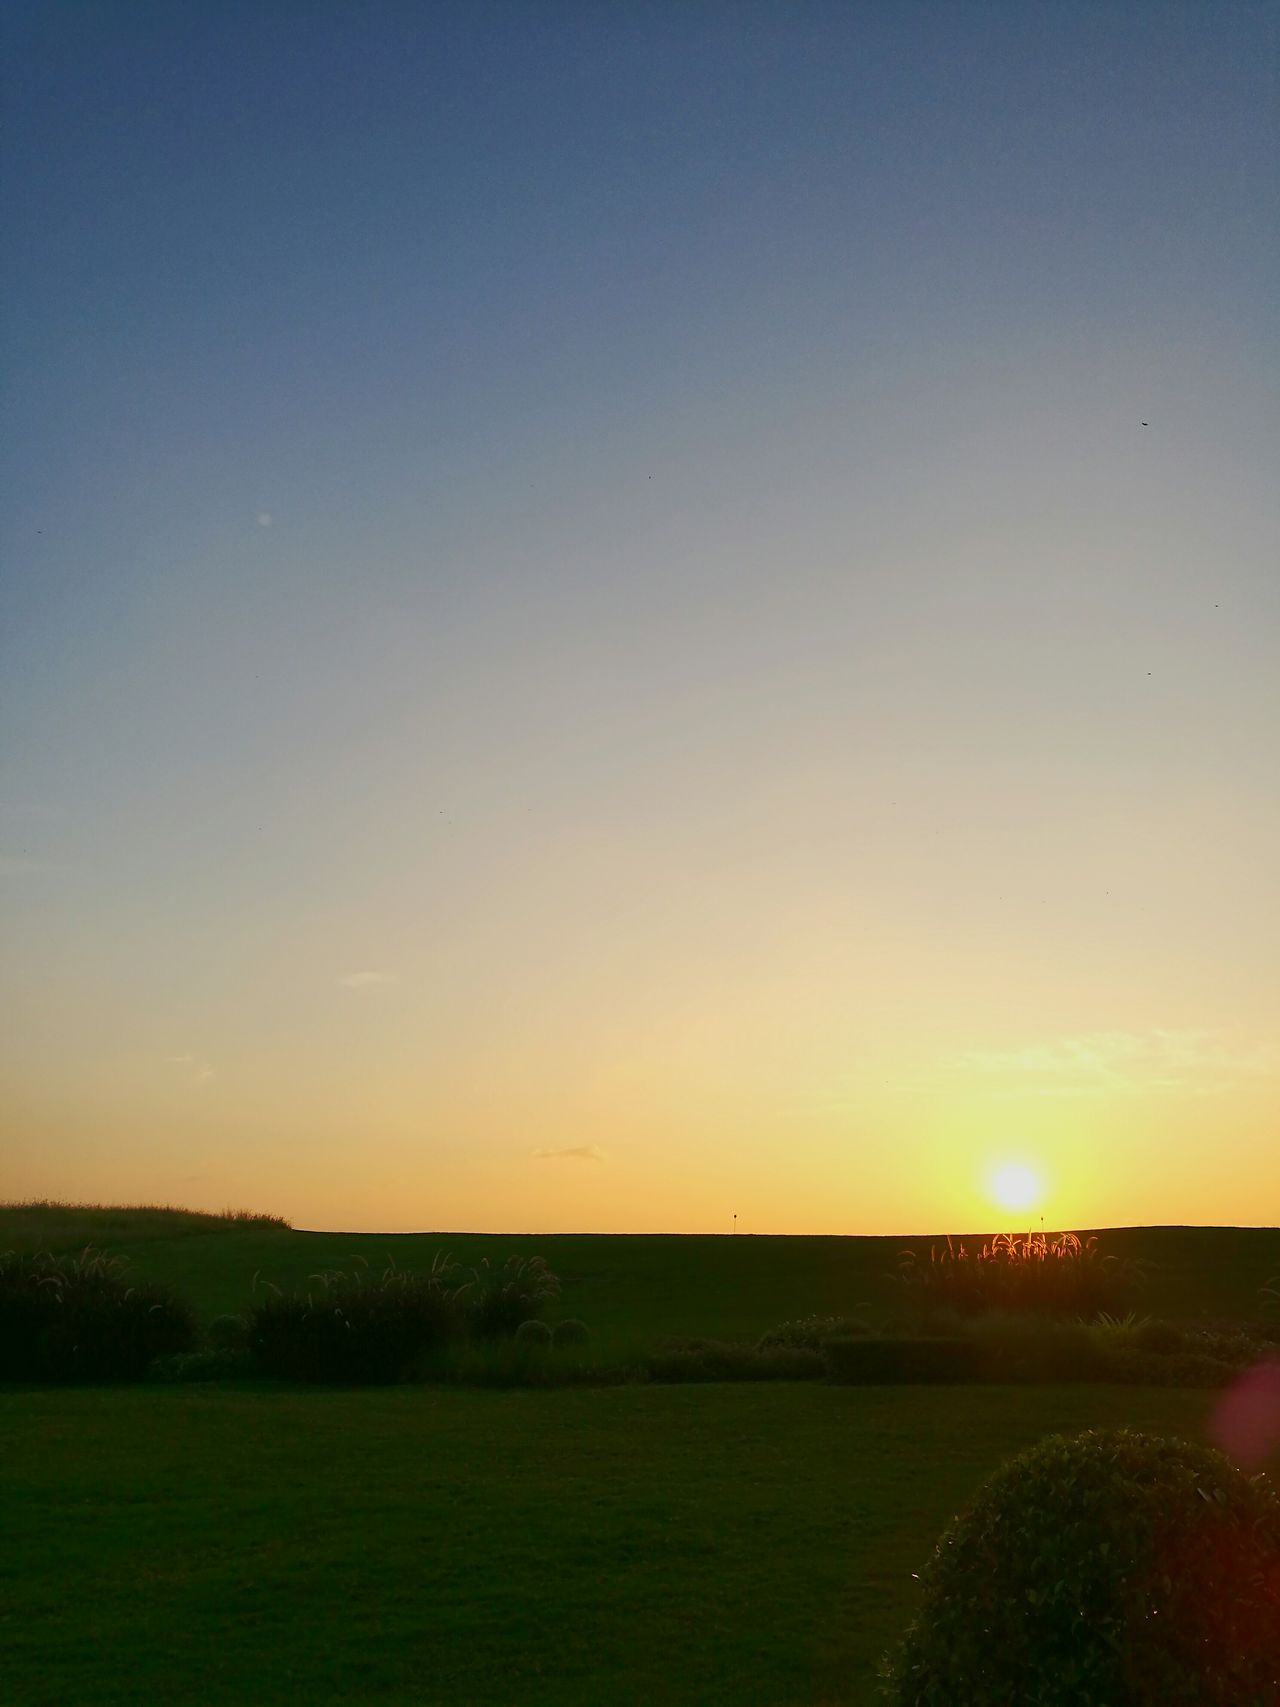 Nature Sunrise Sky Beauty In Nature Tranquil Scene Landscape Rural Scene Outdoors No People Day Wake UpSunset Morningsun Morning Sunlight And Shadows Winter Scenics